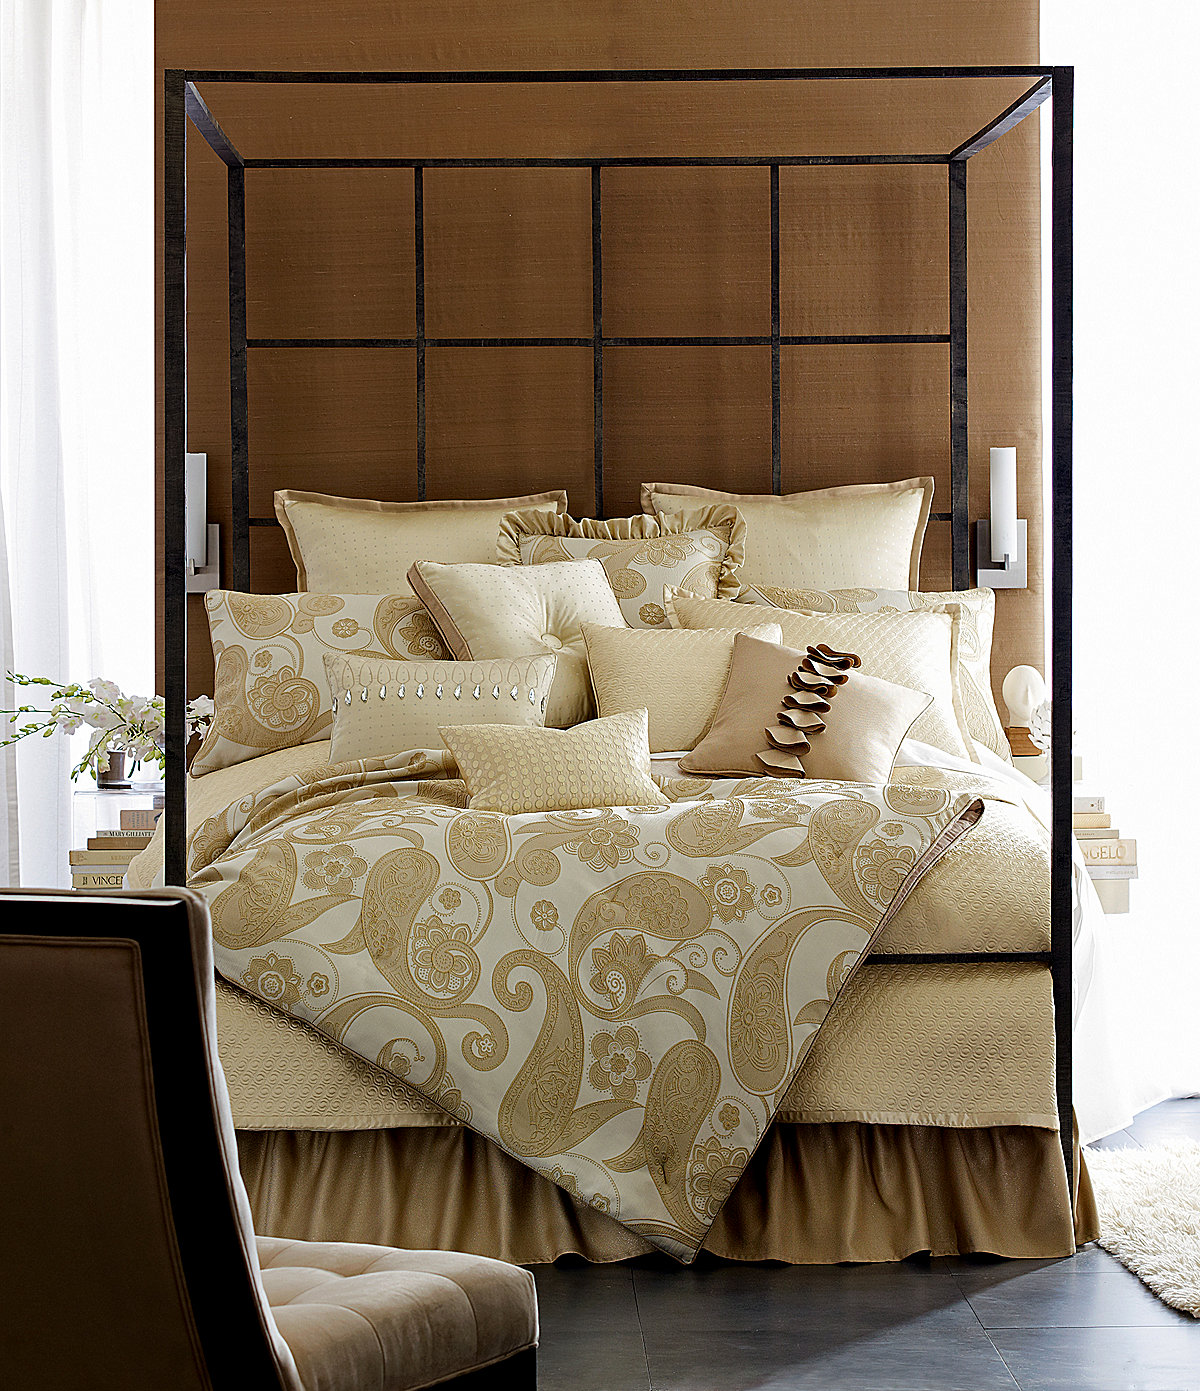 2013 Candice Olson Bedding Collection From Dillard's